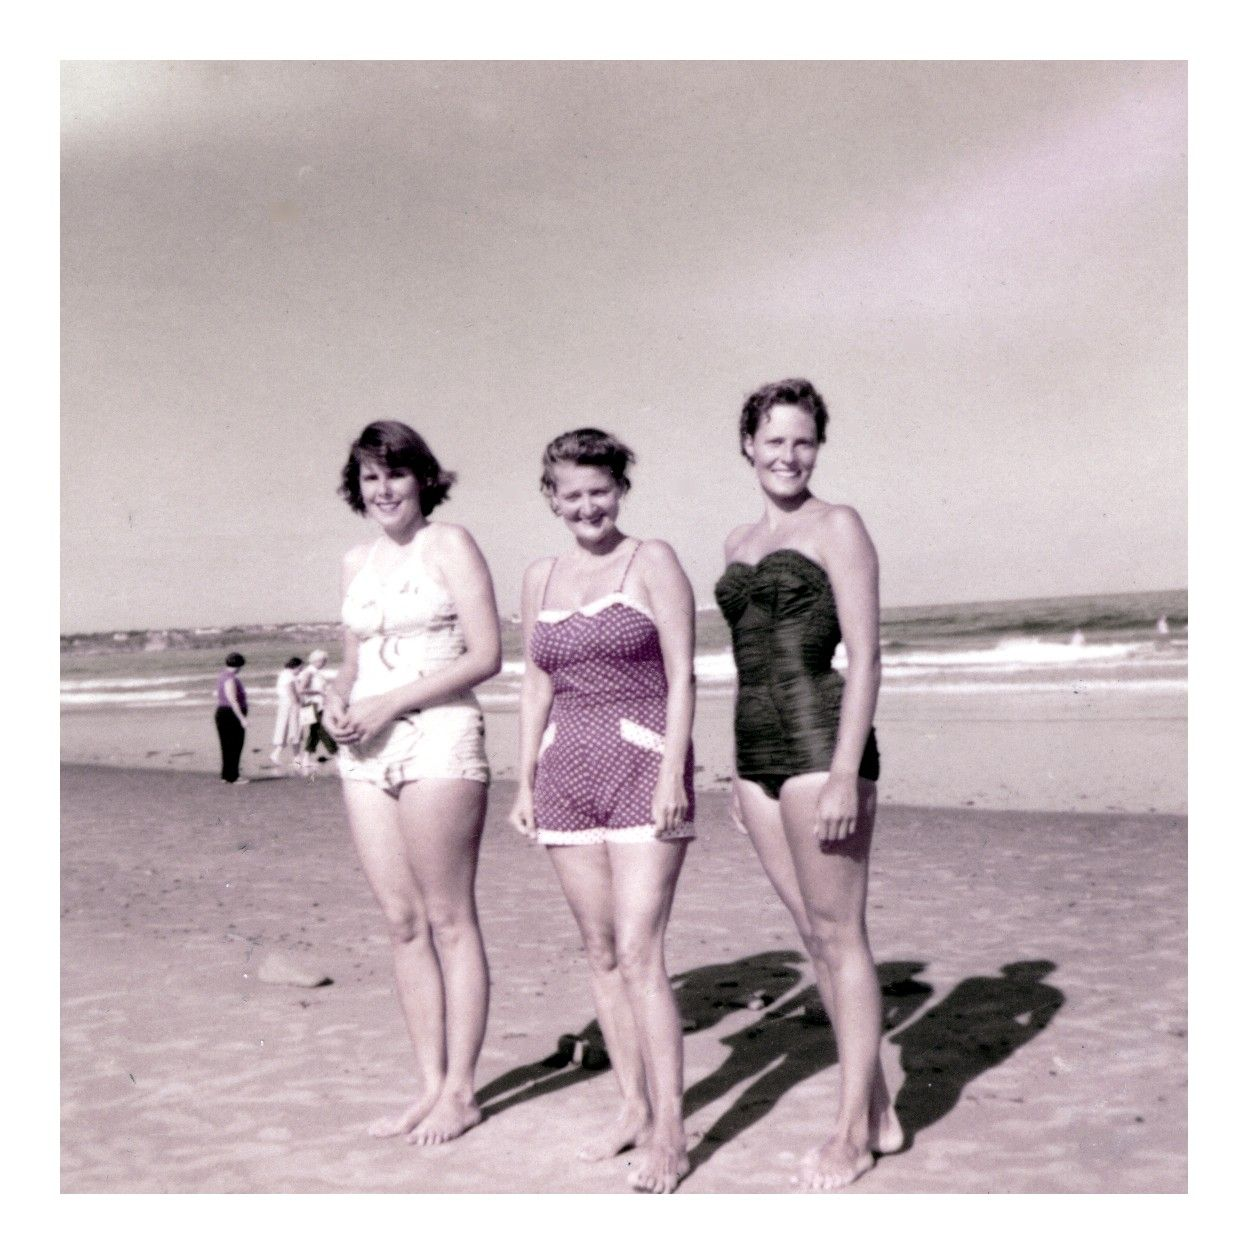 f5a0636559af0 1950s  The early Days of Swimwear Outbreak – 43 Color Snapshots Show Women  in Bathing Suits over 60 Years Ago